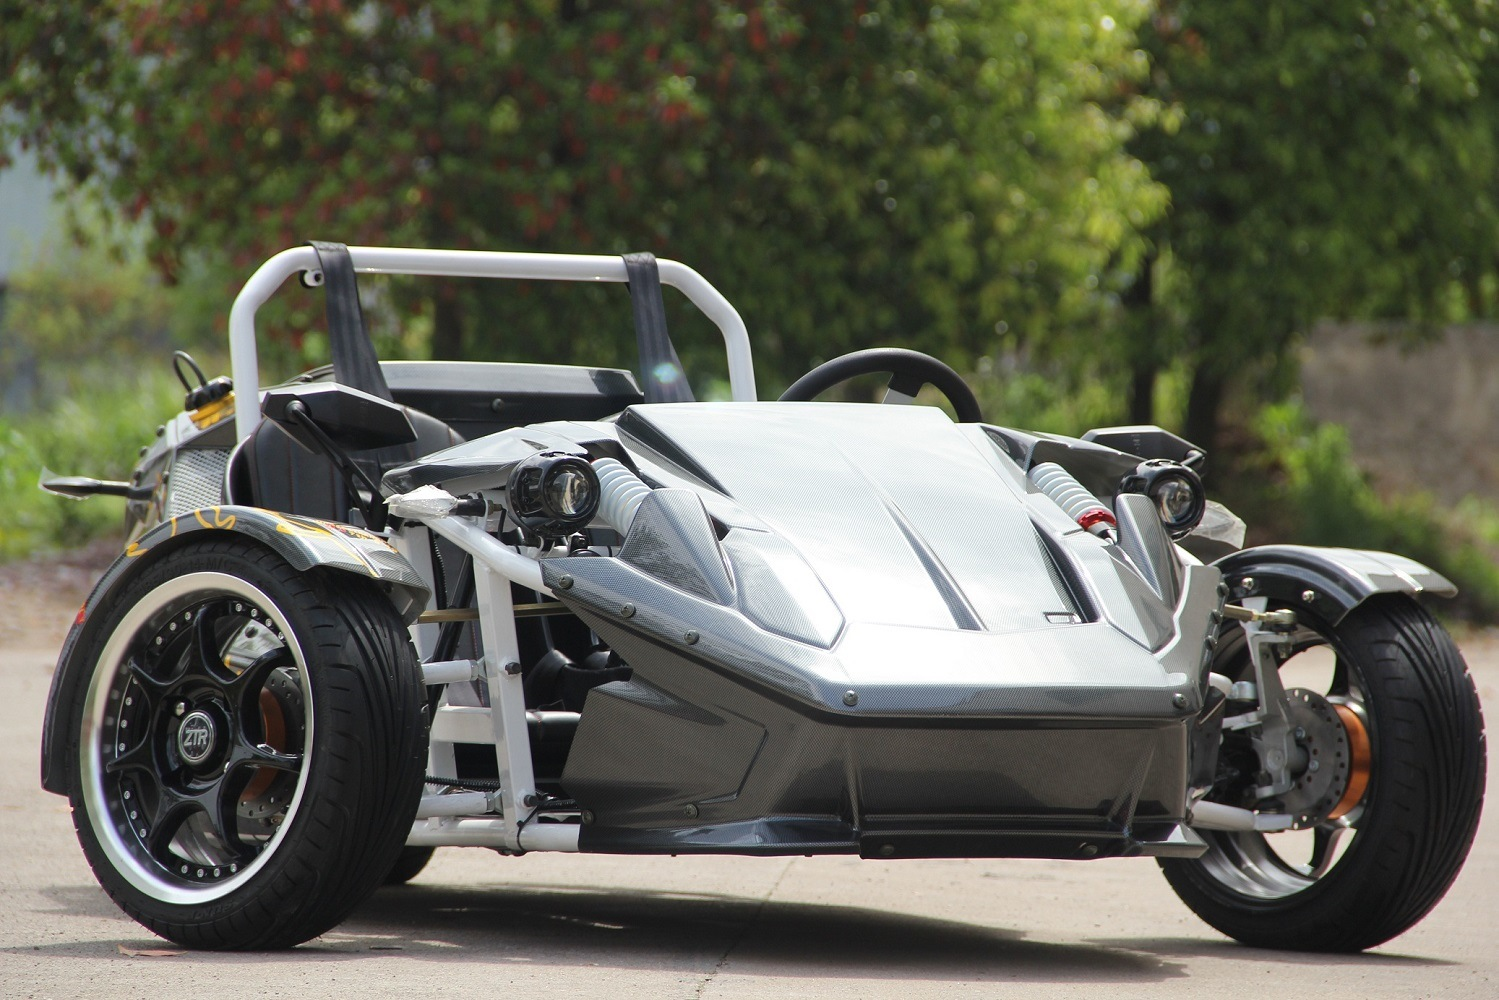 ff34707fdd7 China 200cc Reverse Trike Roadster Motorcycle for Sale - China Trike, Ztr